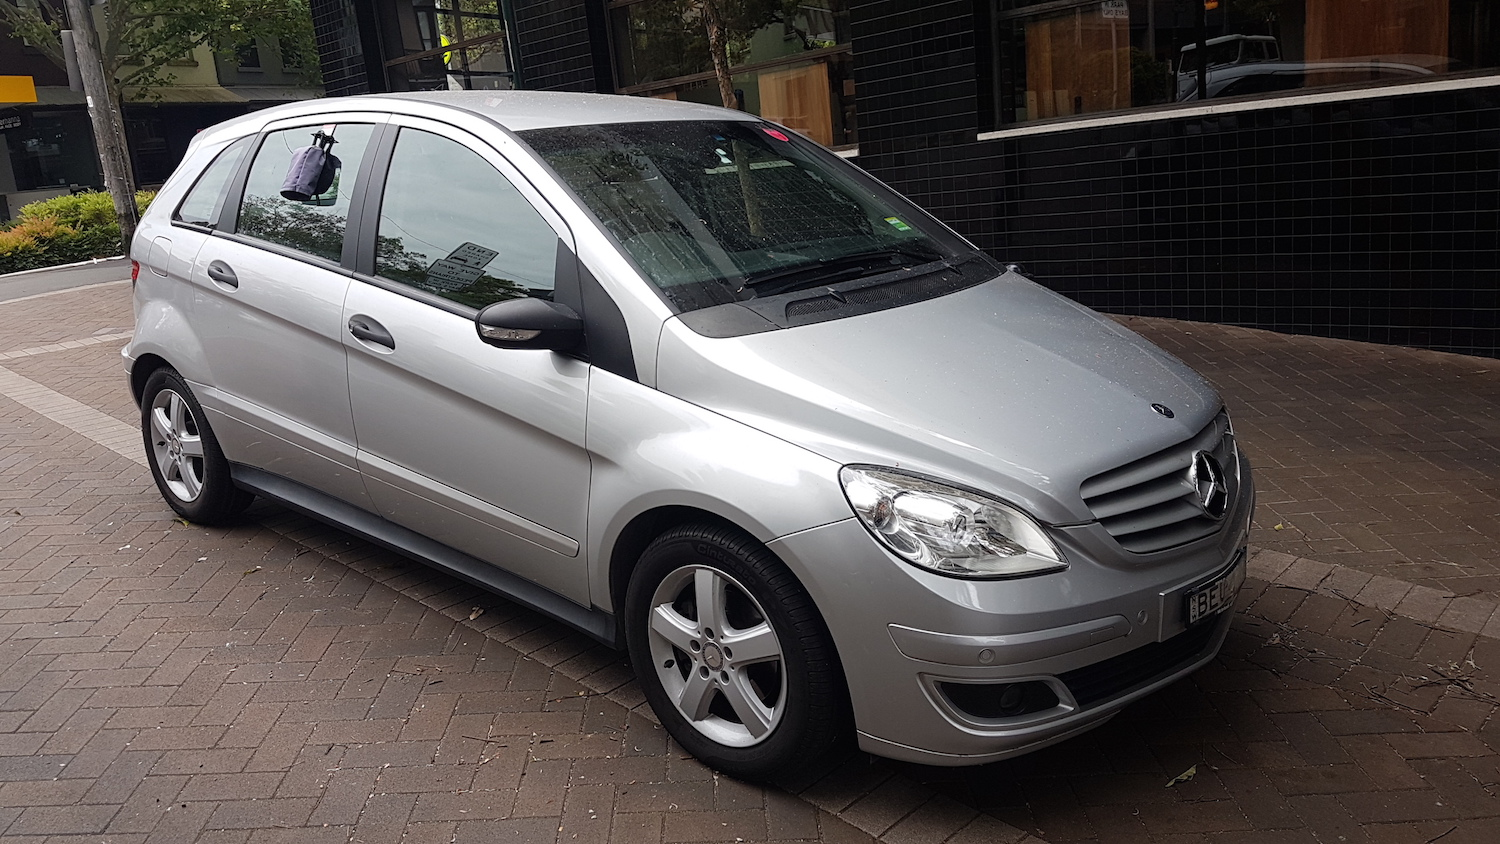 Picture of Peter's 2008 Mercedes-Benz B200 w245 my08 hatchback